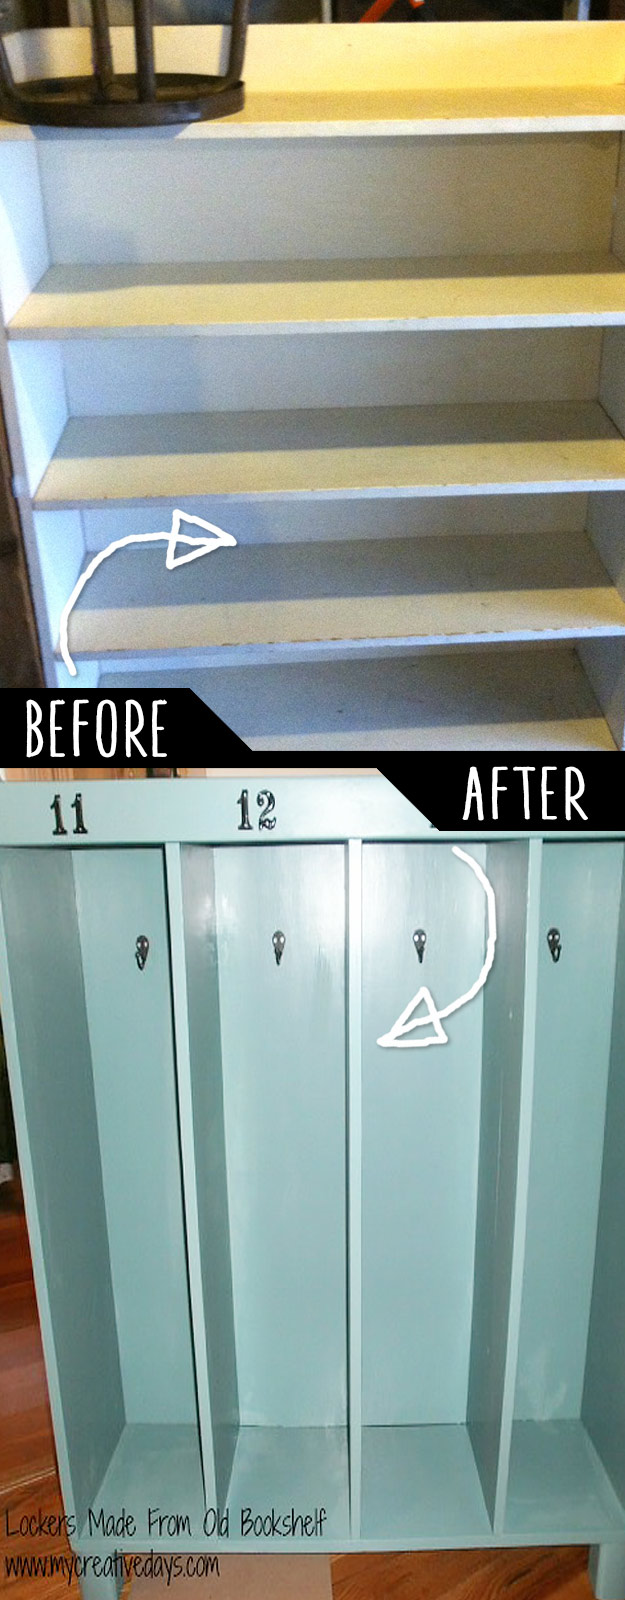 DIY Furniture Hacks | Lockers Made From Old Bookshelf | Cool Ideas for Creative Do It Yourself Furniture Made From Things You Might Not Expect  #diy